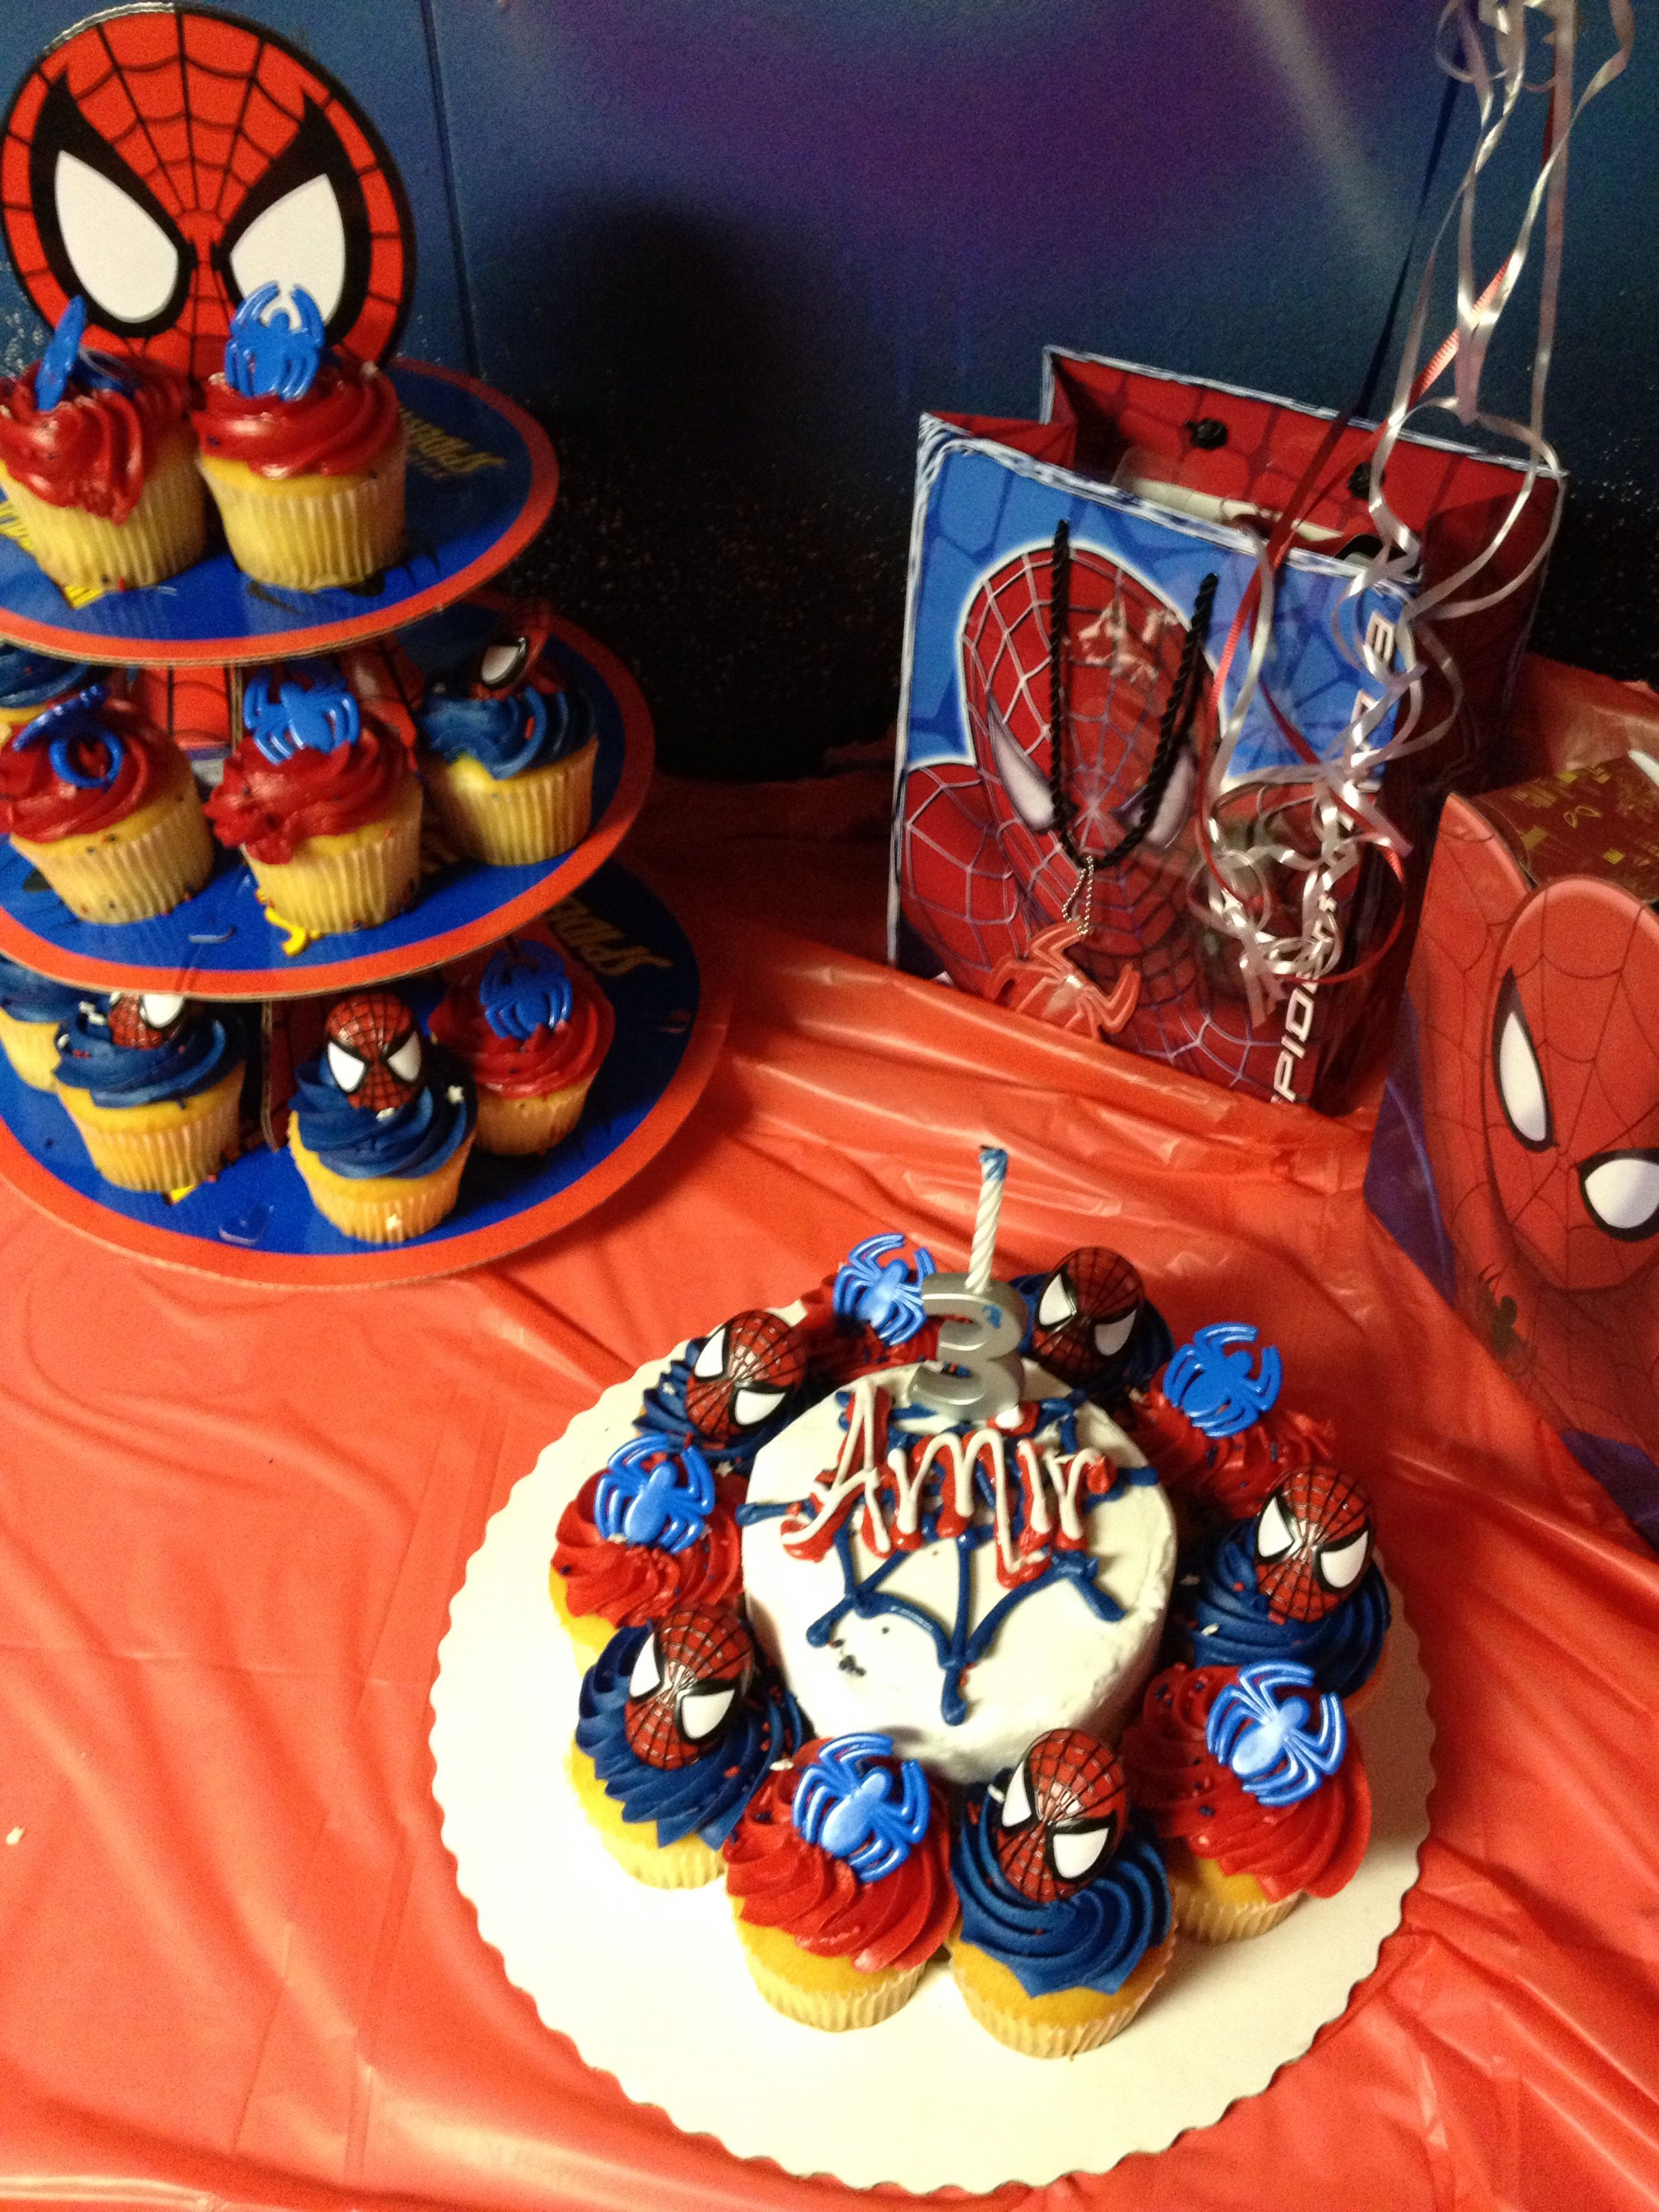 Sams Club Birthday Cake Spiderman Cake And Cupcake From Sams Clubonly 26 Total30